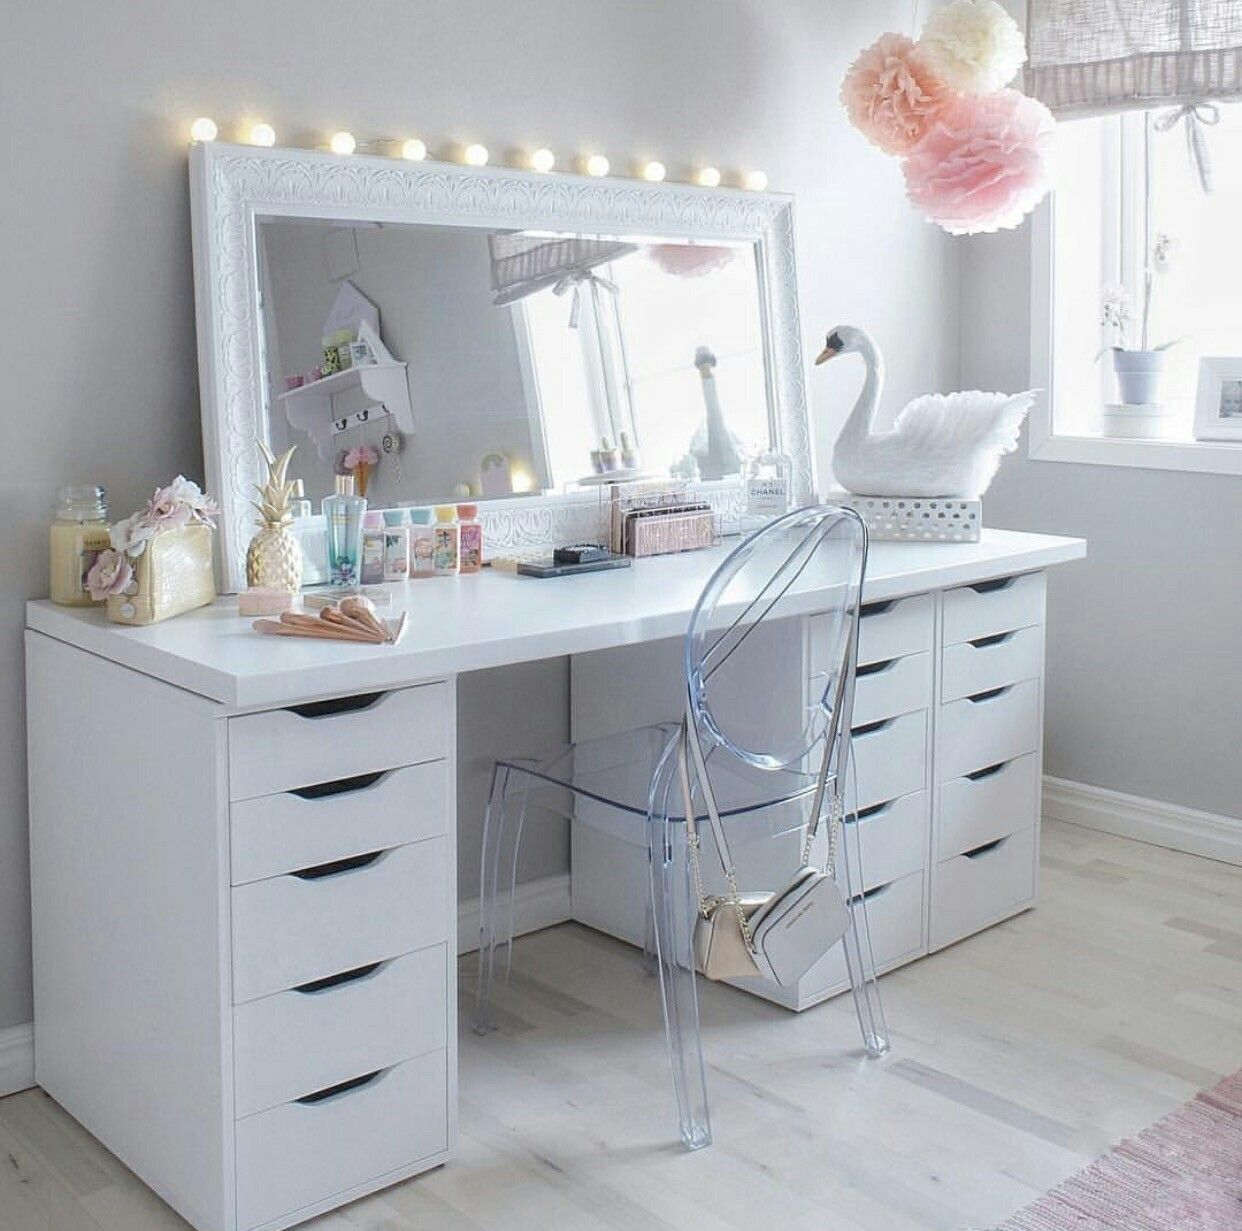 Pin by Elizabeth Medina on Vanities Beauty room vanity